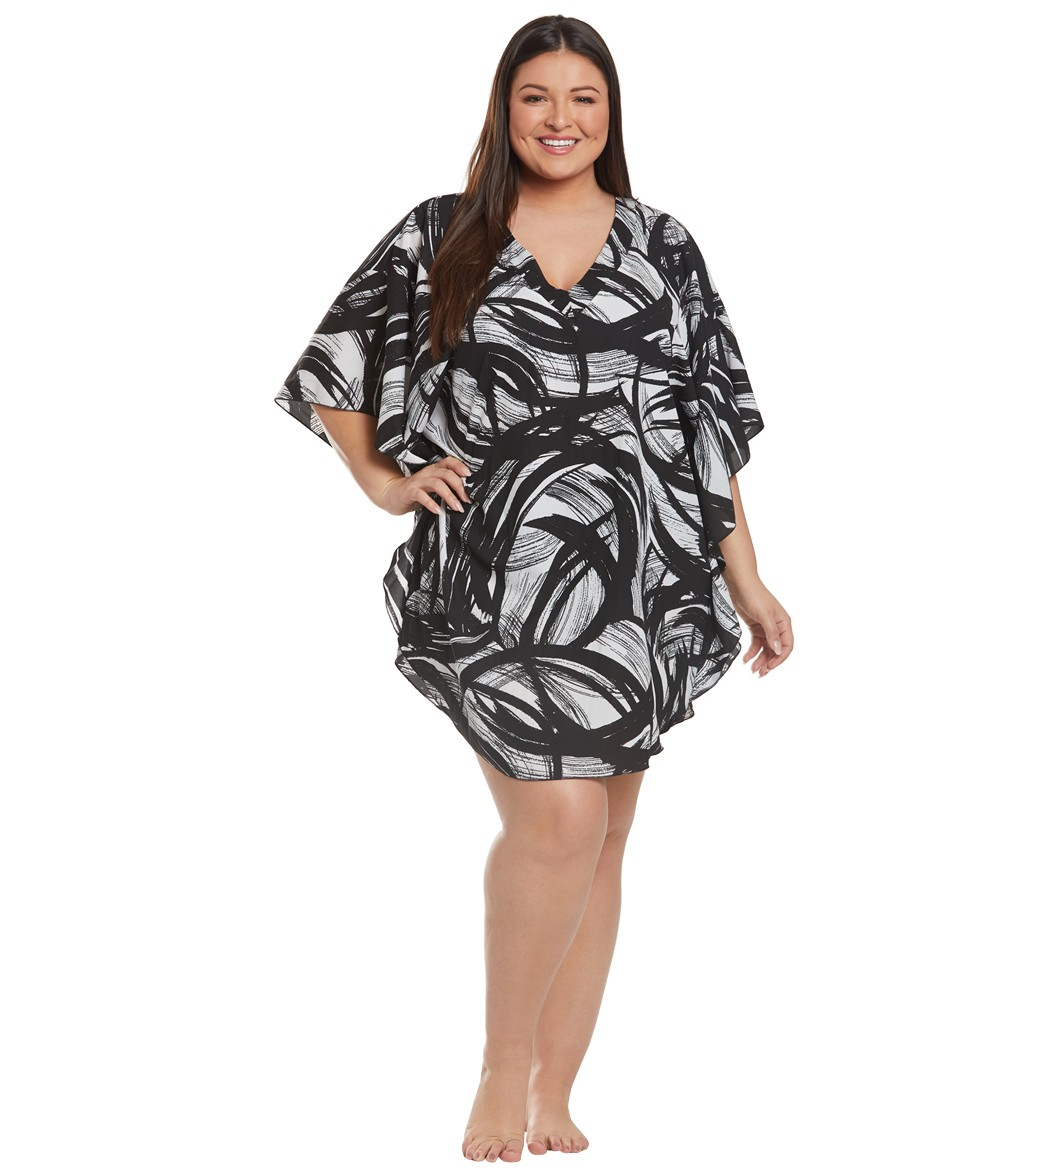 ae8481f36e Maxine Plus Size Tidal Wind Caftan Cover Up at SwimOutlet.com